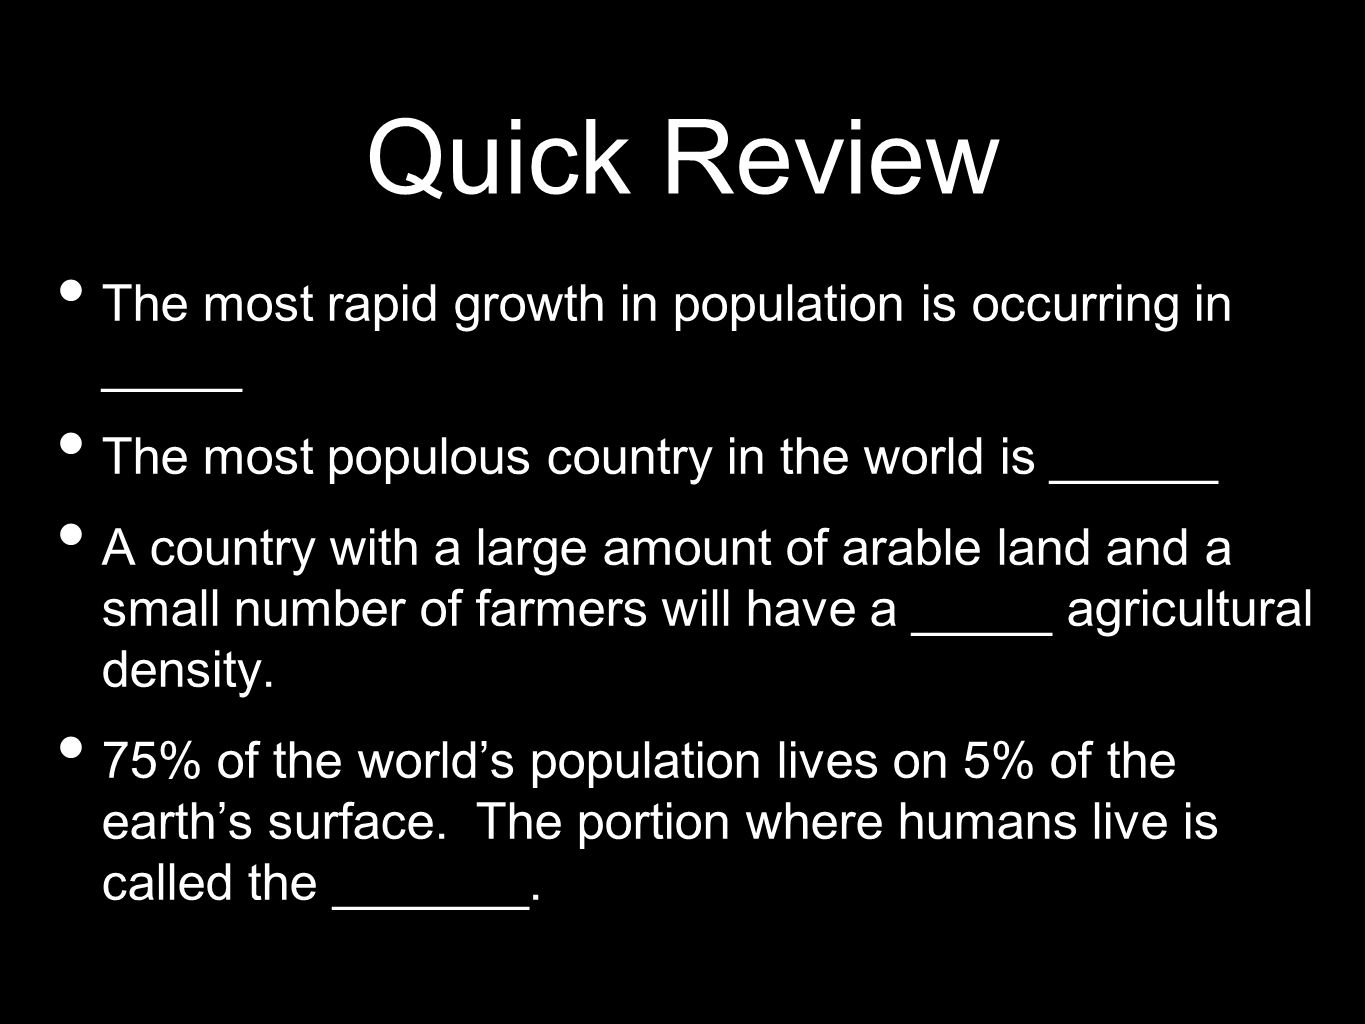 Quick Review The most rapid growth in population is occurring in _____